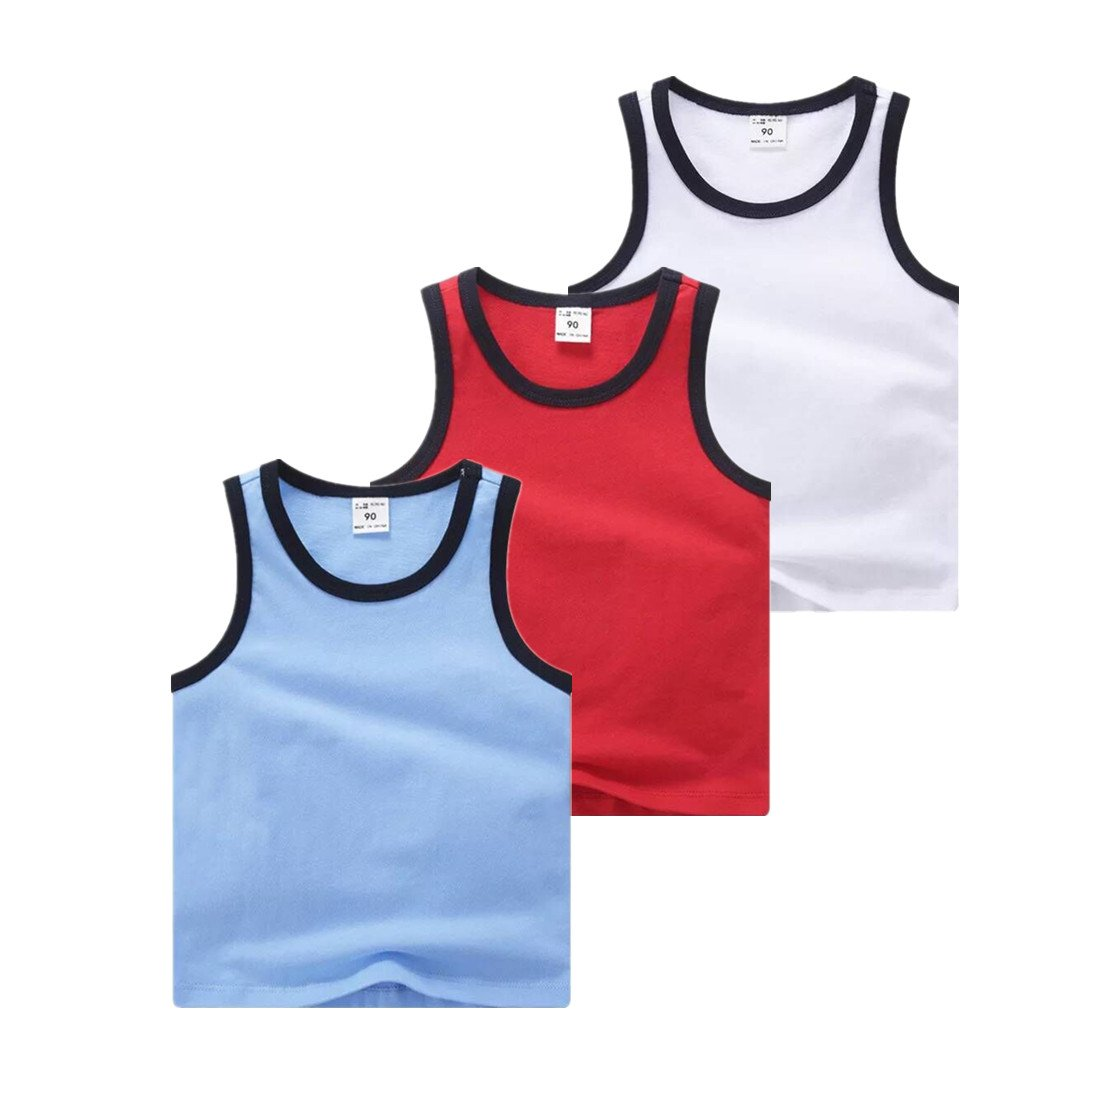 Sooxiwood Little Boys Tank Tops Solid Vest Summer Size 12M Style-1